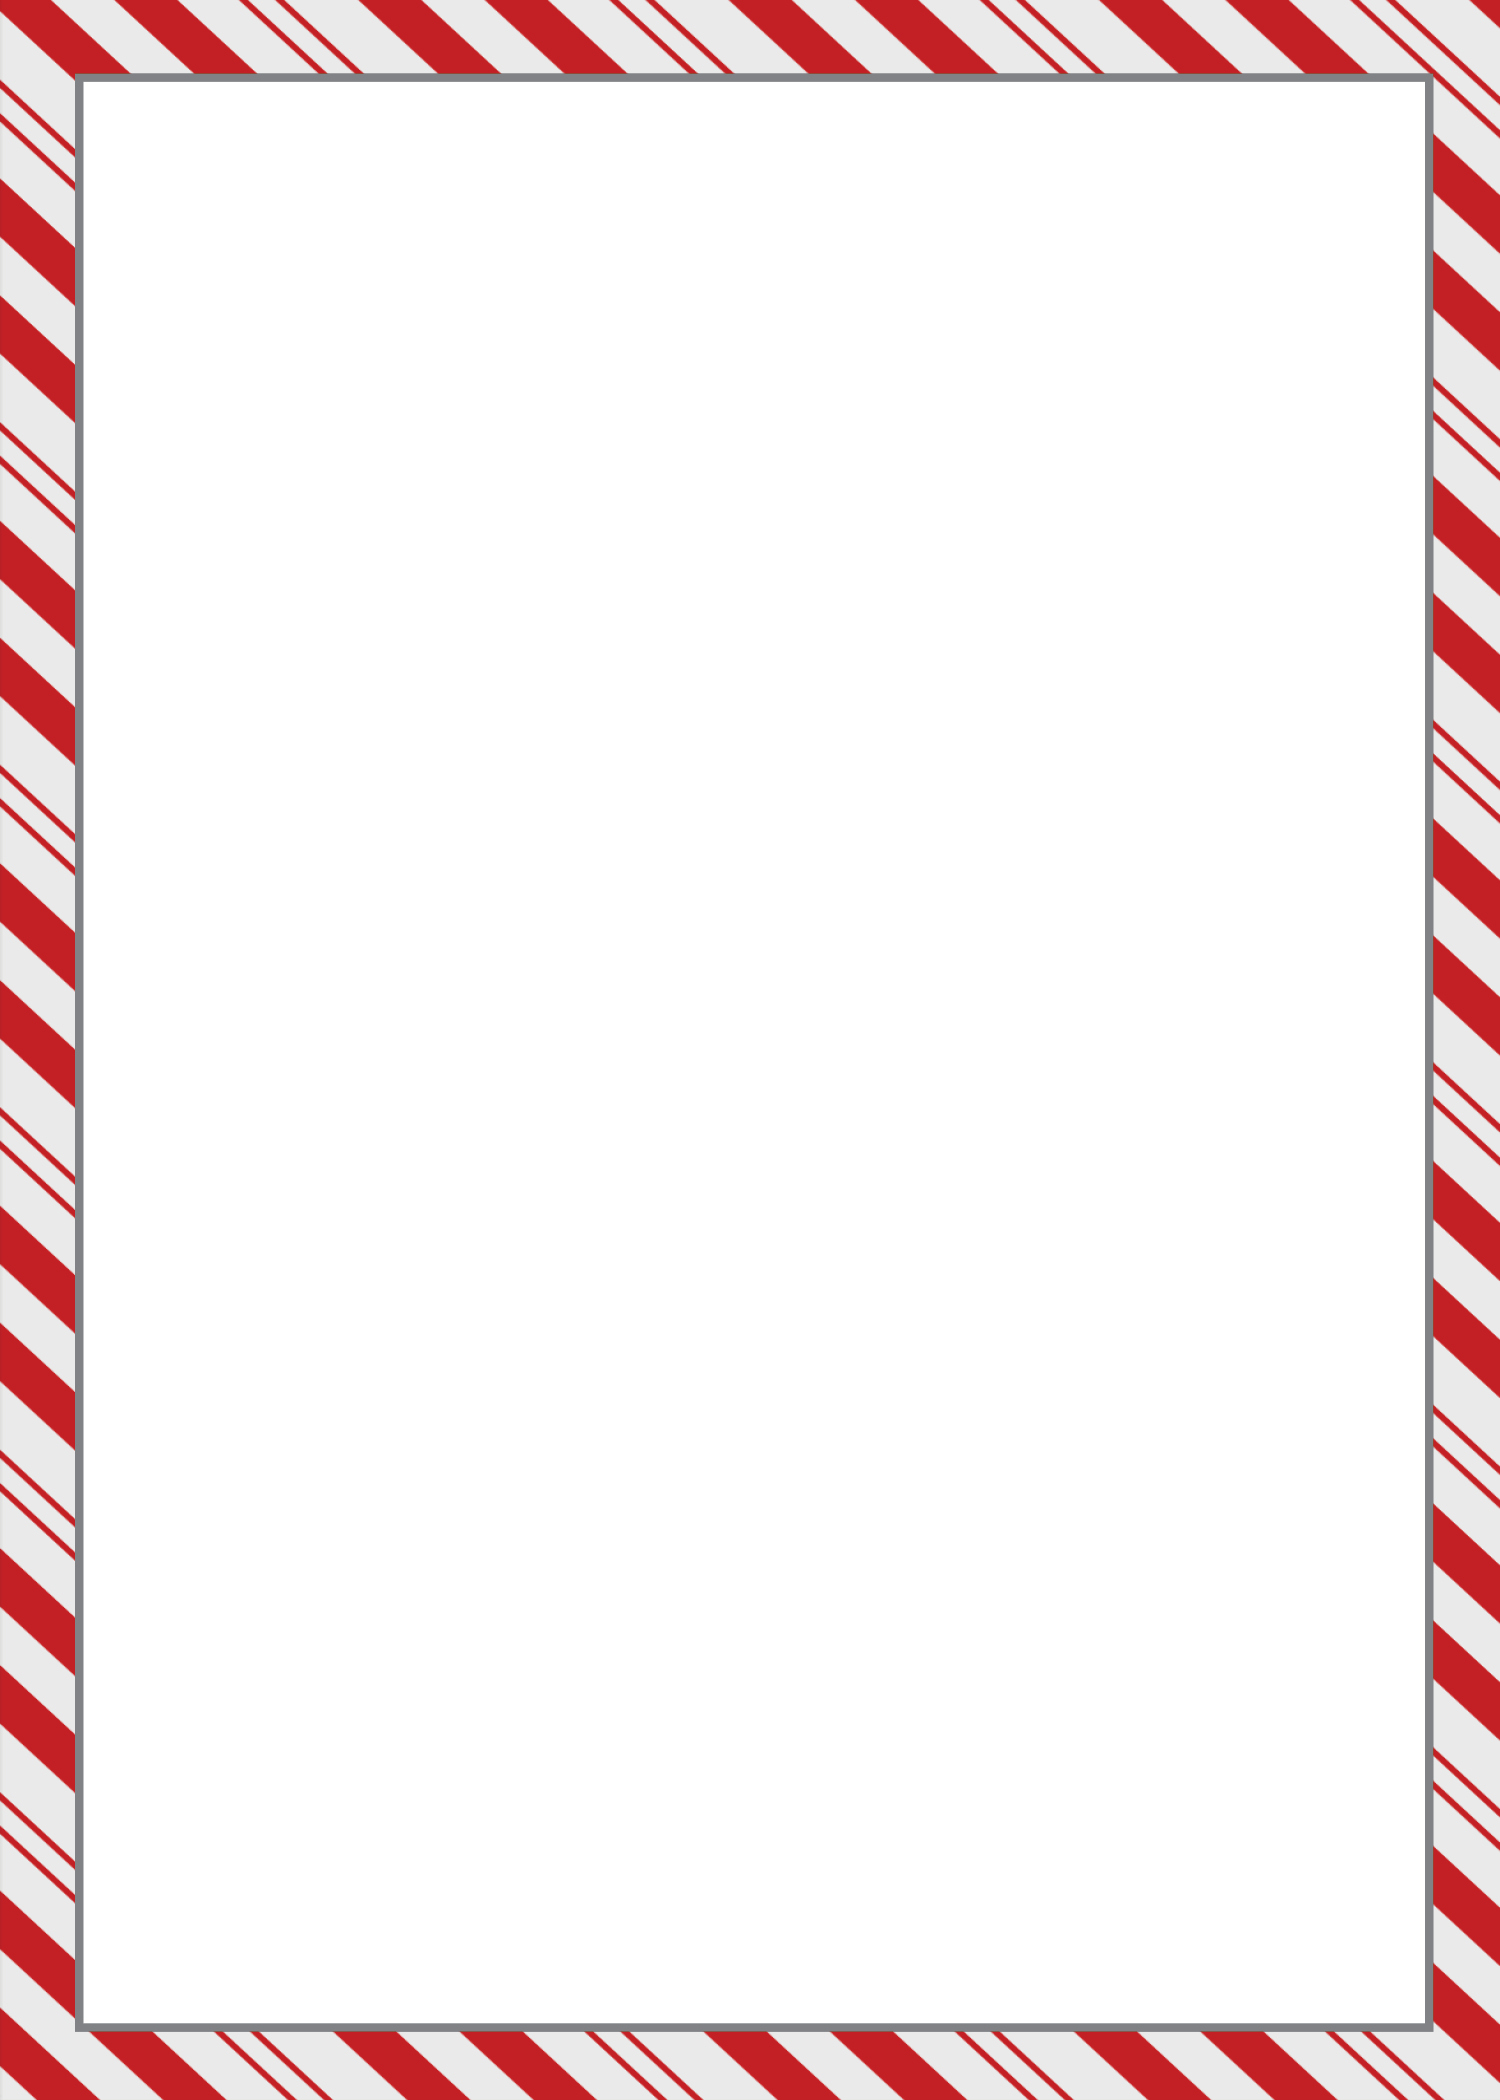 Holiday Memo Template Auto Electrical Wiring Diagram Ouku Th8829ga Wire Harness 8 Best Images Of Printable Candy Cane Borders